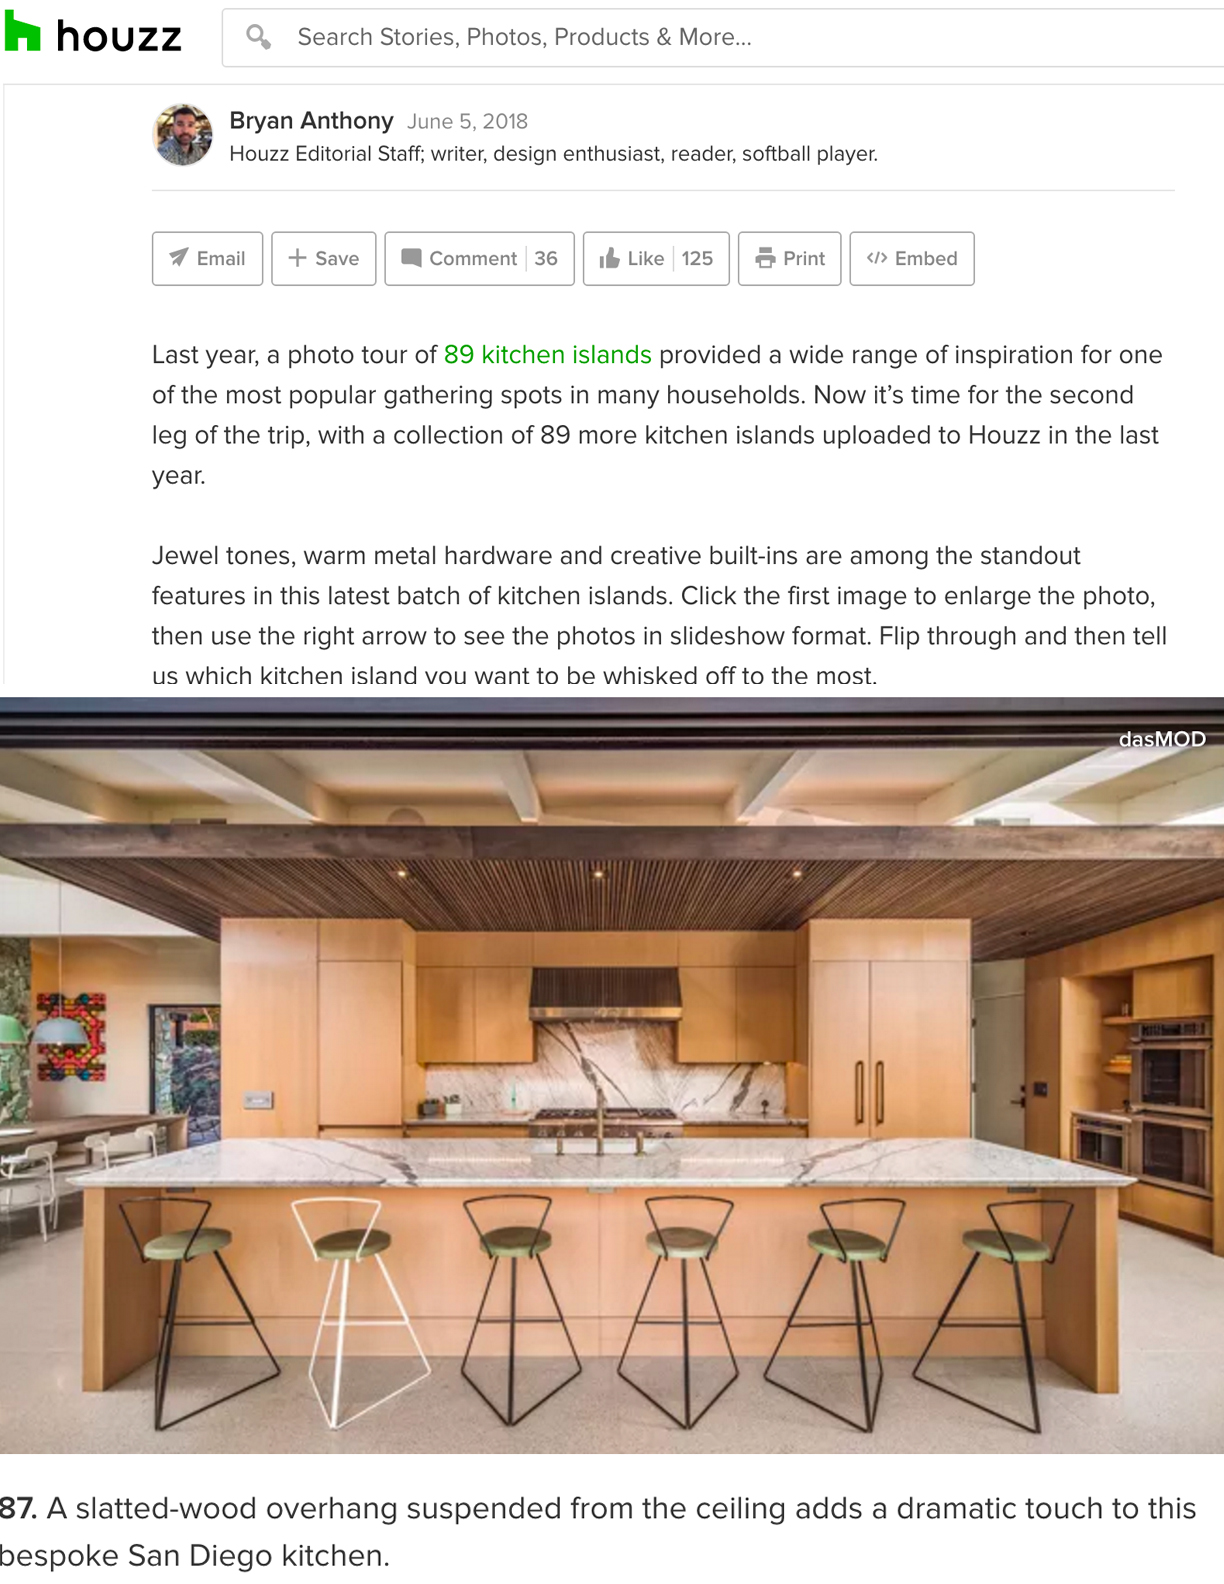 HOUZZ | JUNE 5, 2018  Let's Go Island Hopping Again. Check Out These 89 Kitchens.